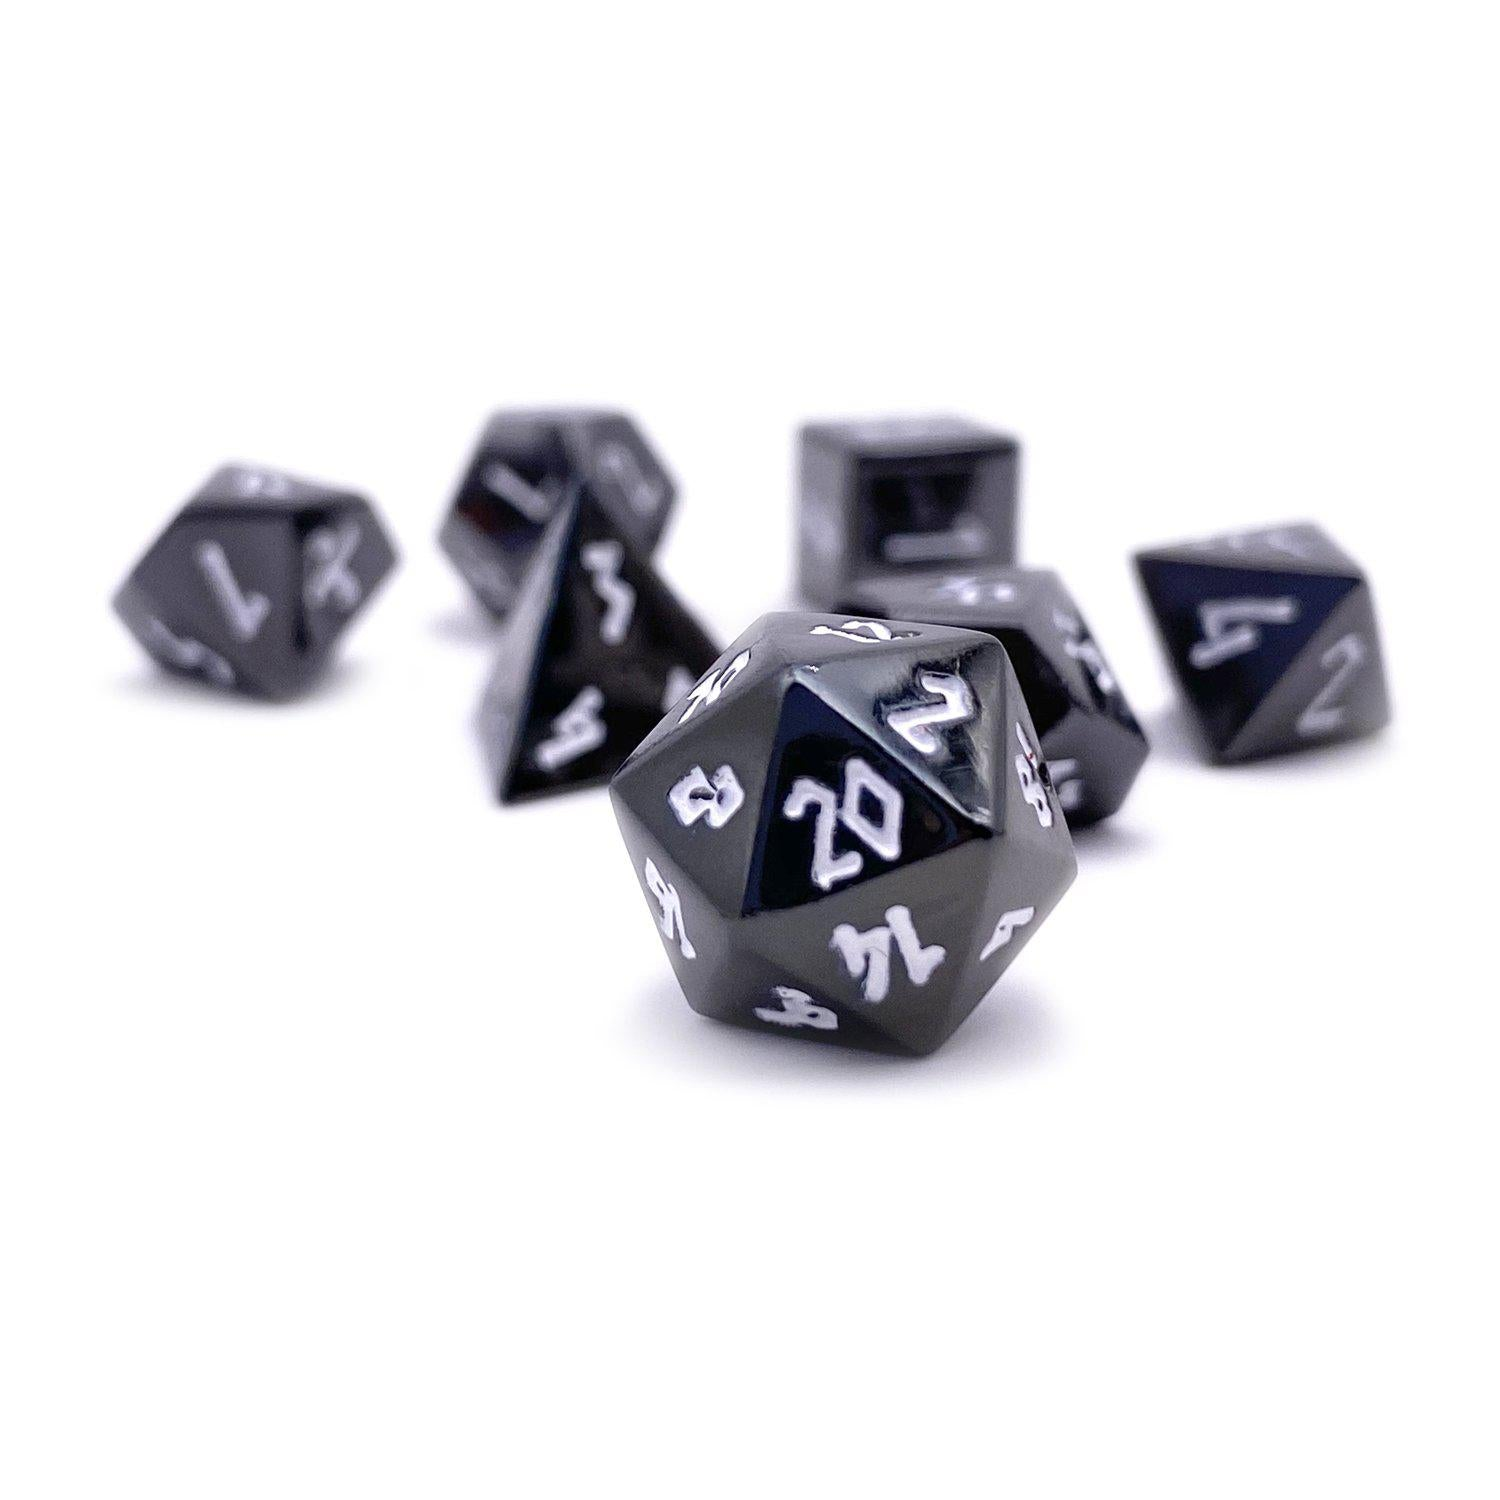 Drow Black Pebble ™ Dice - 10mm Alloy Mini Polyhedral Dice Set